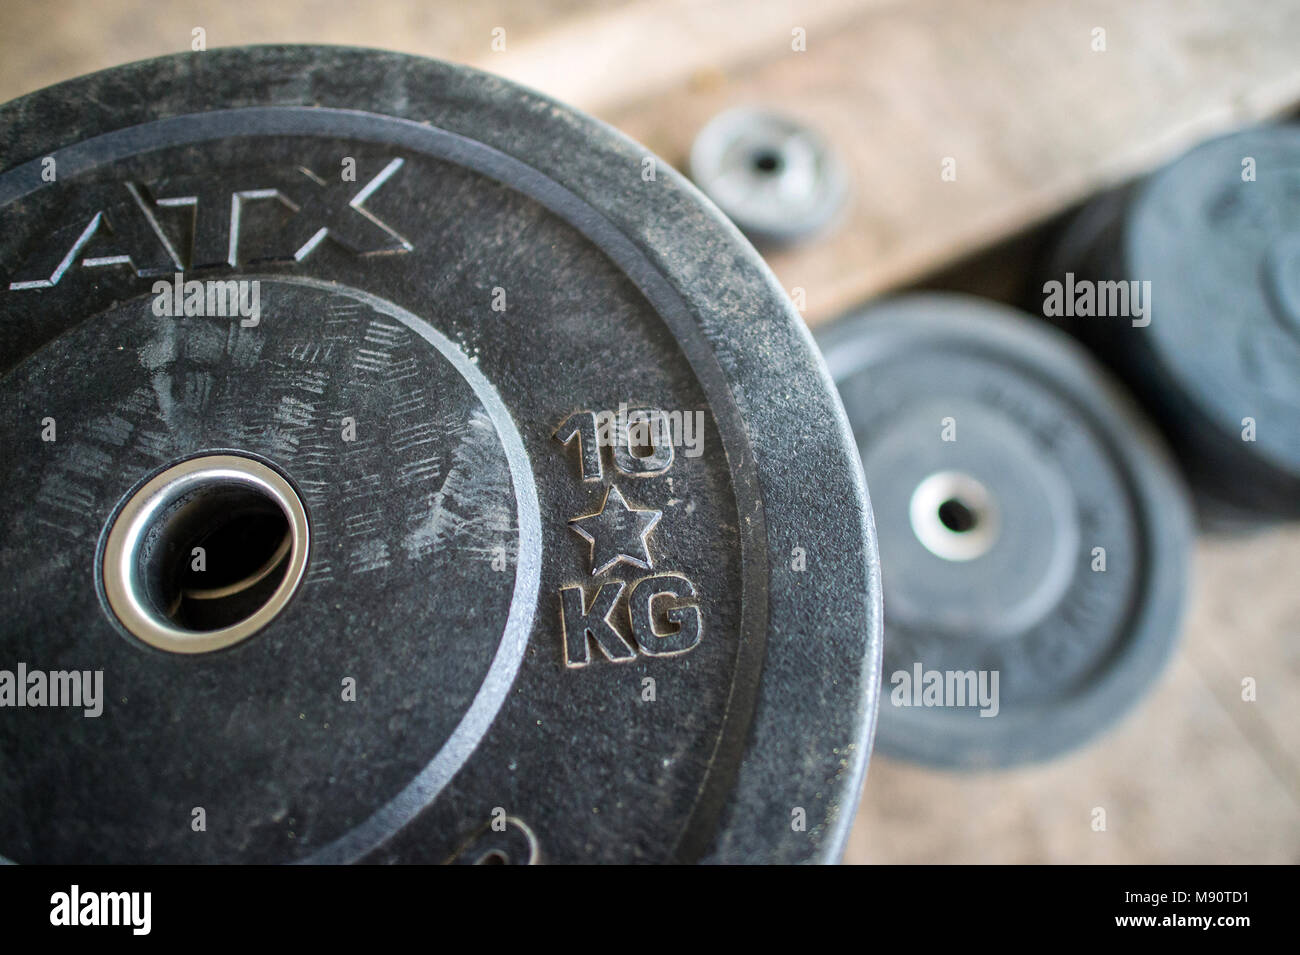 Gym weights. Paris. France. - Stock Image